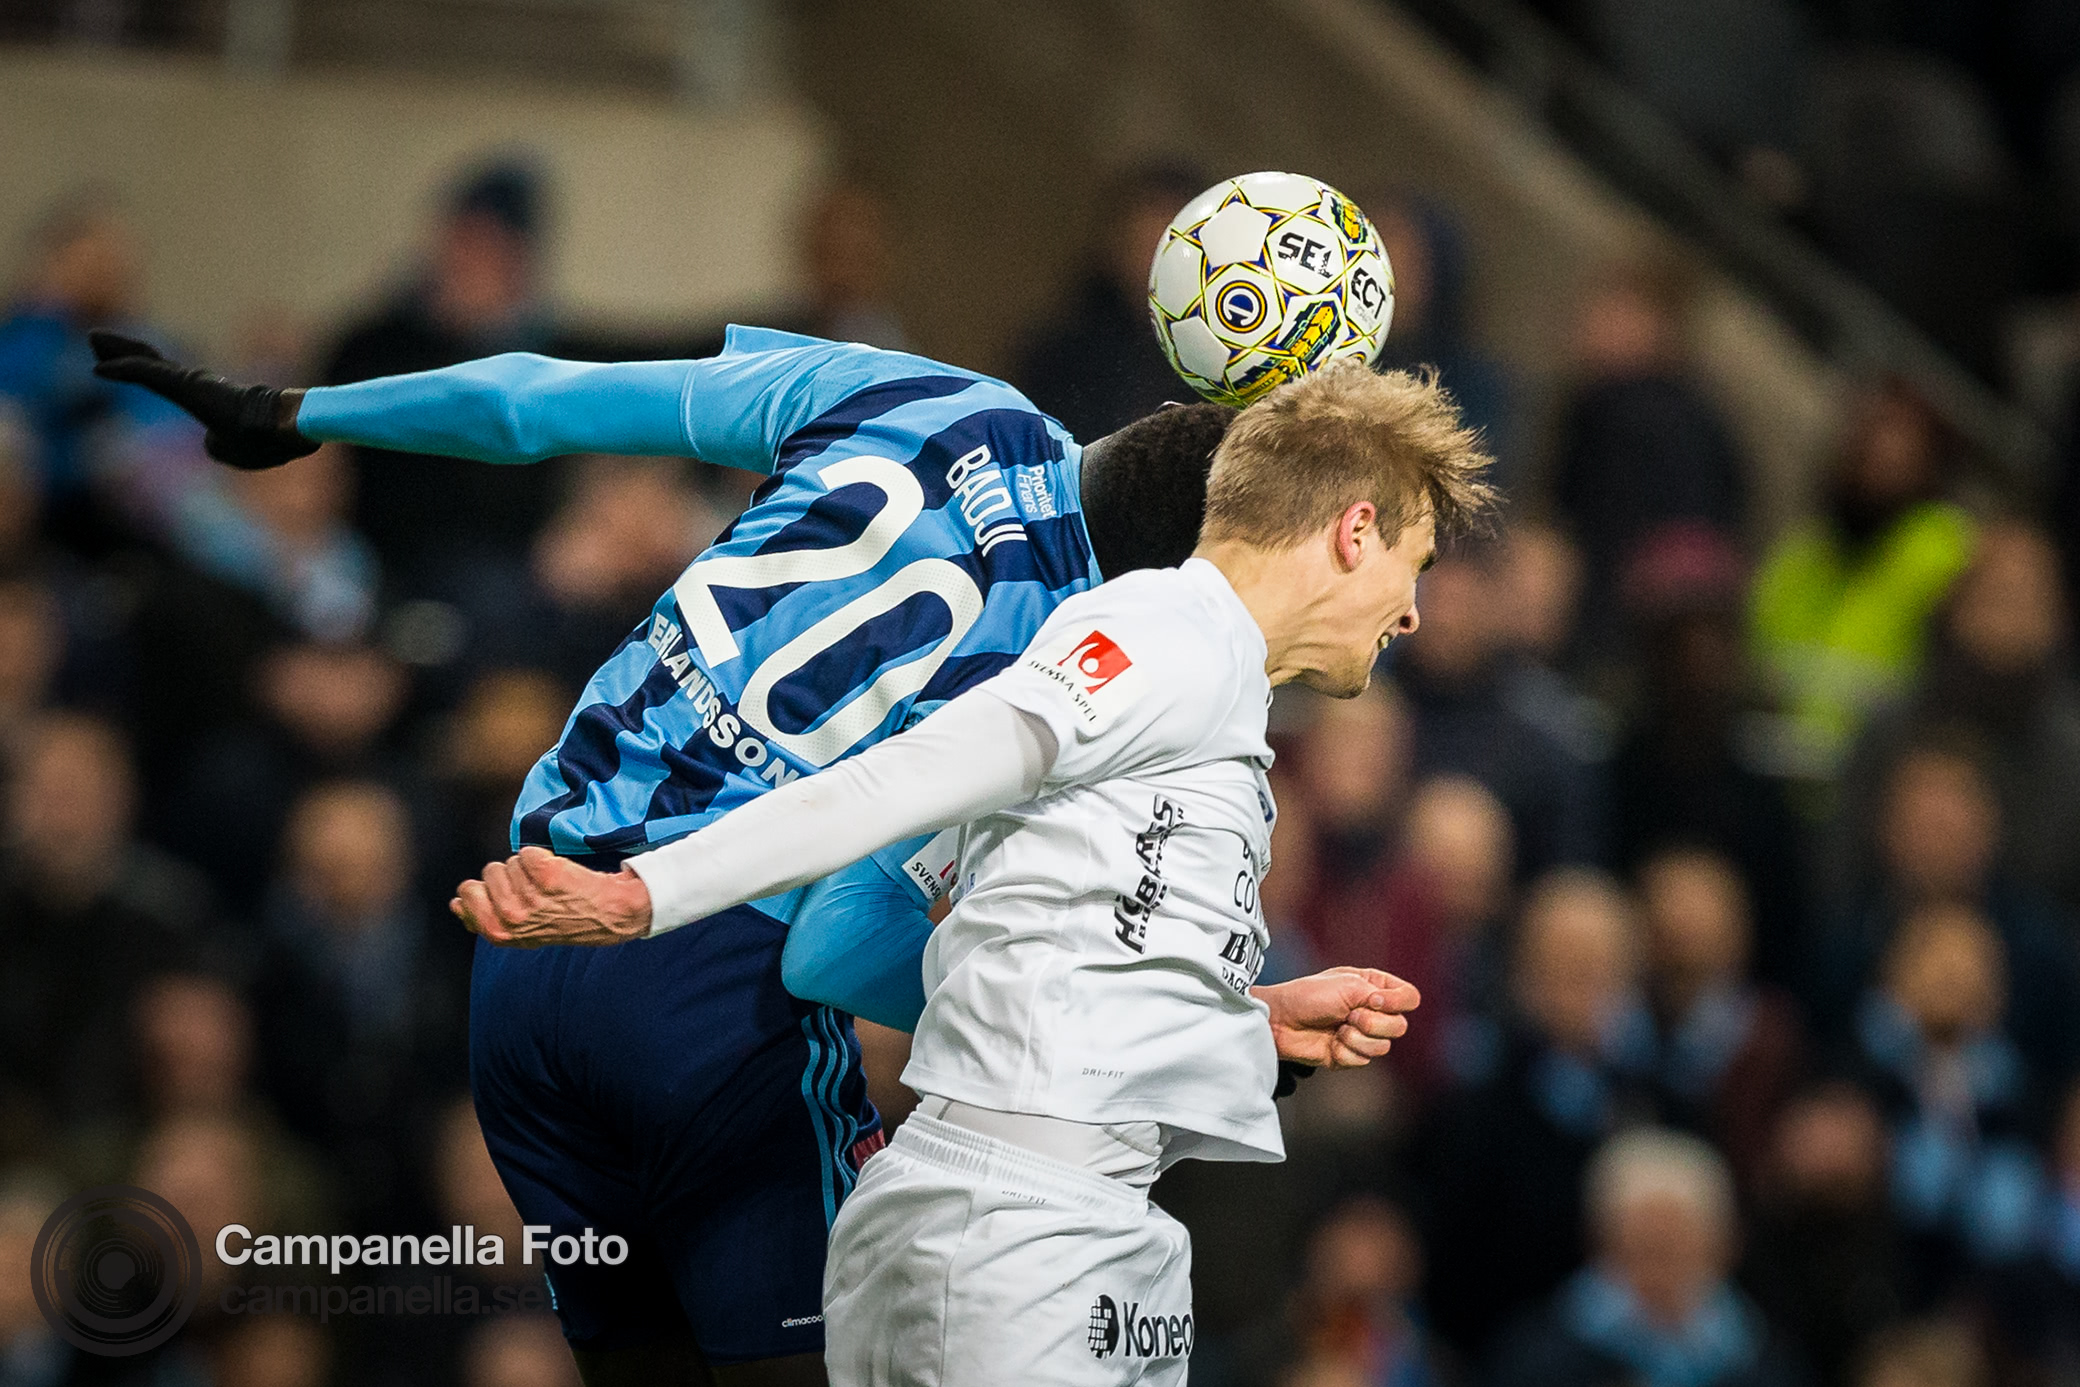 Opening weekend of the 2017 Allsvenskan season - Michael Campanella Photography